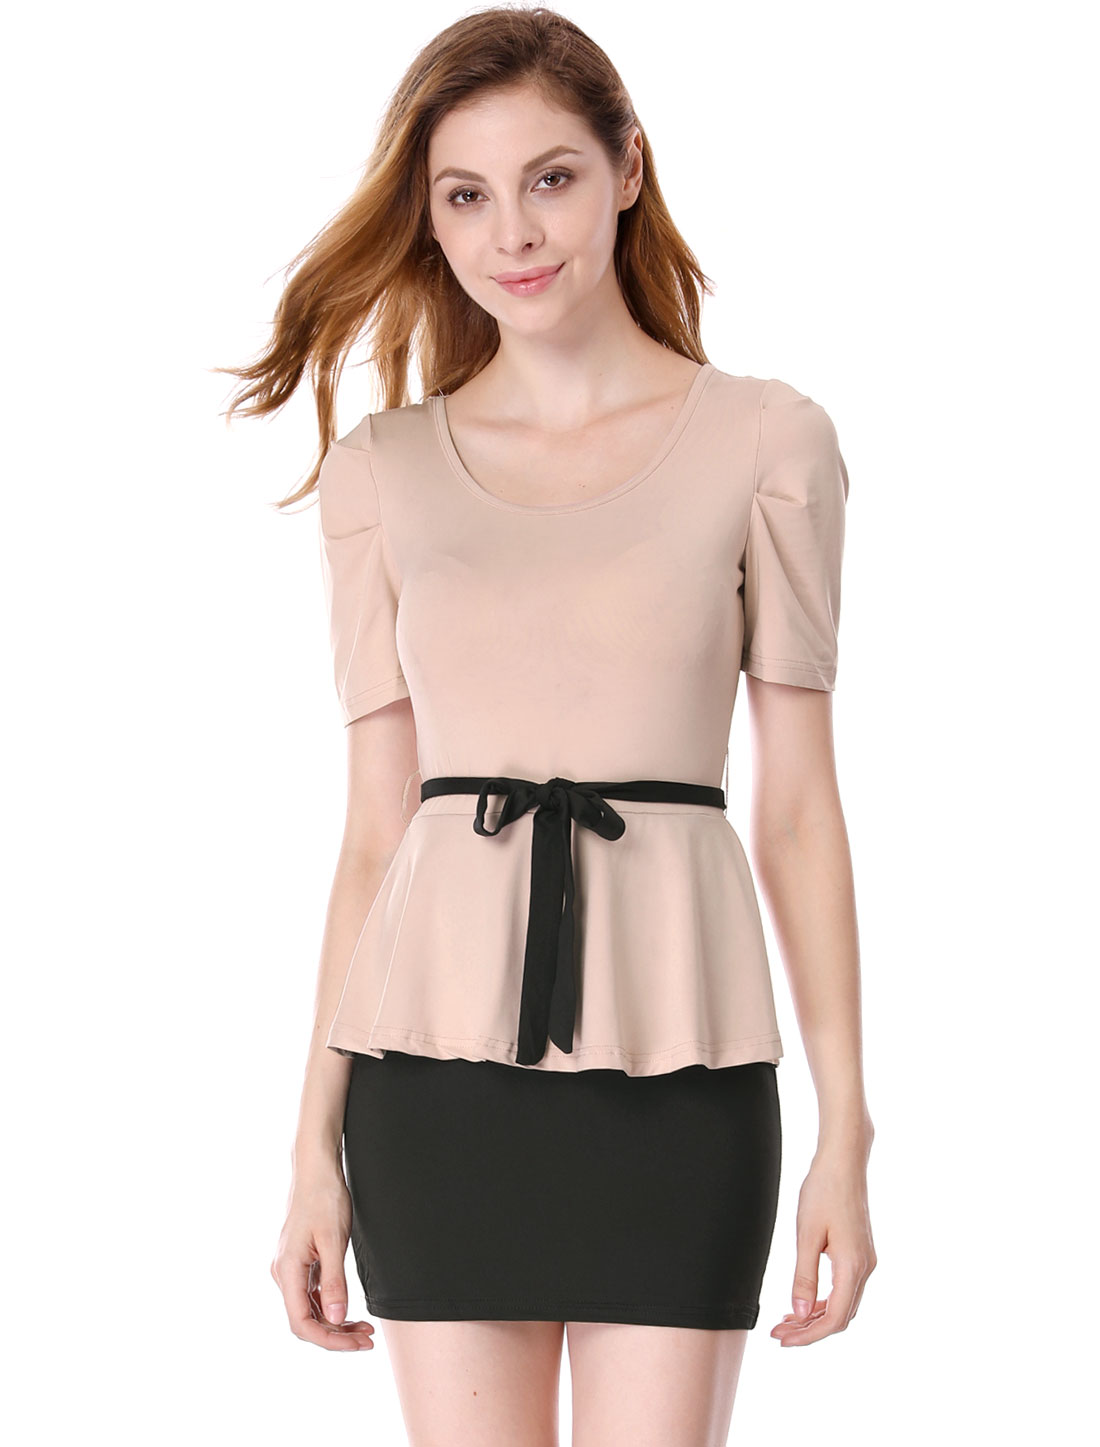 Women Contrast Color Design Black Pink Splice Peplum Mini Dress M